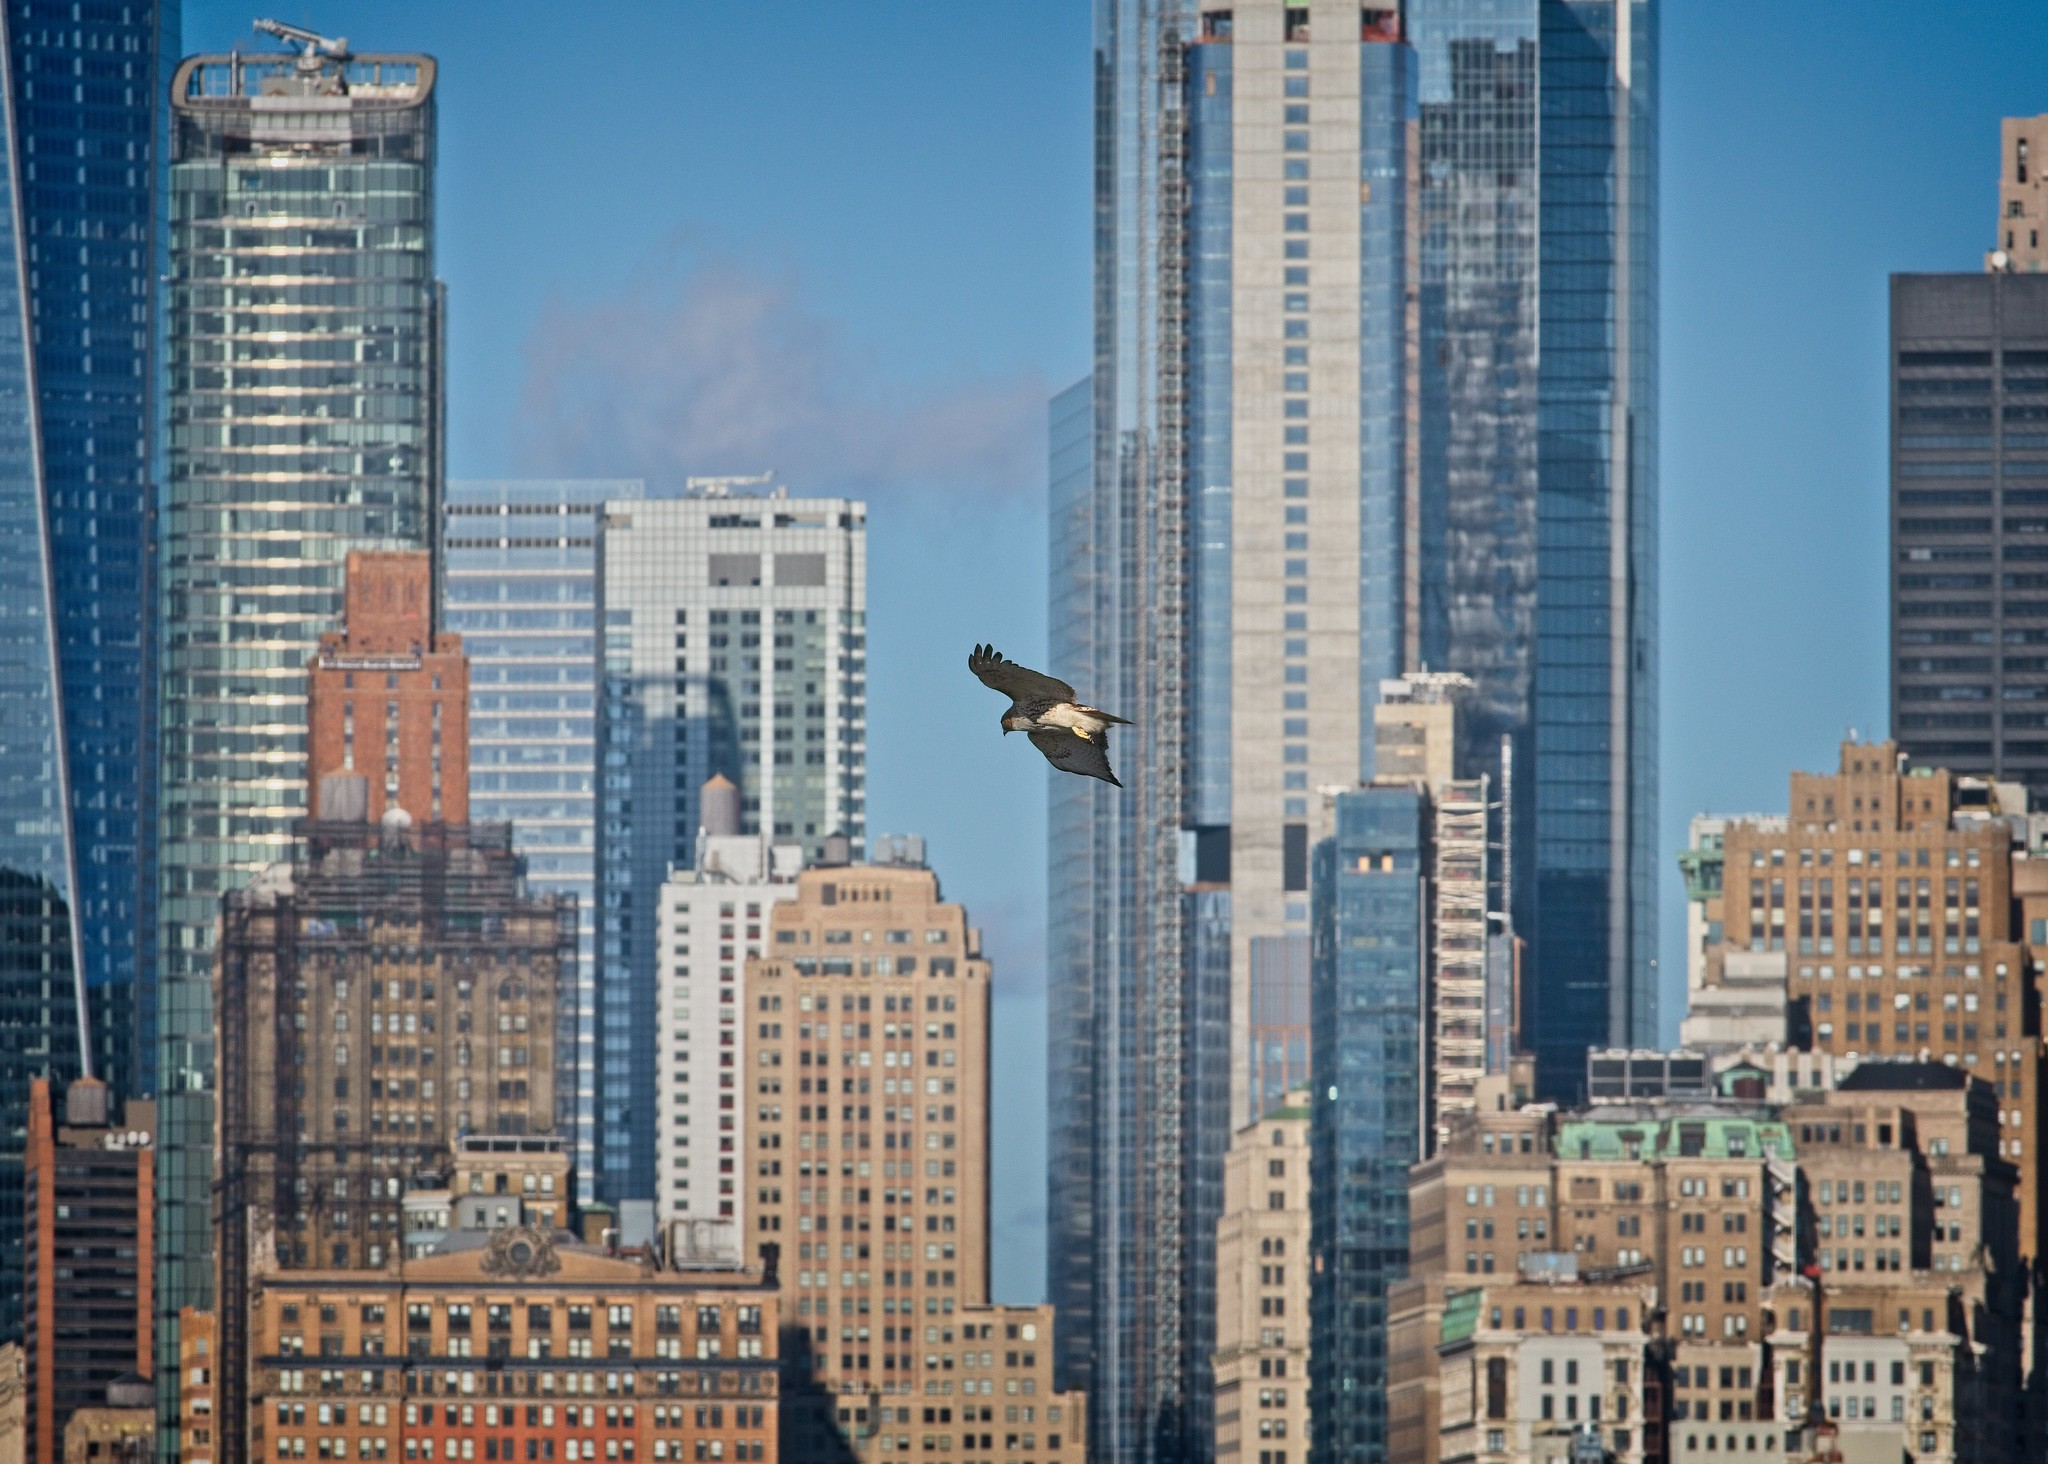 Red-tail flying past lower Manhattan